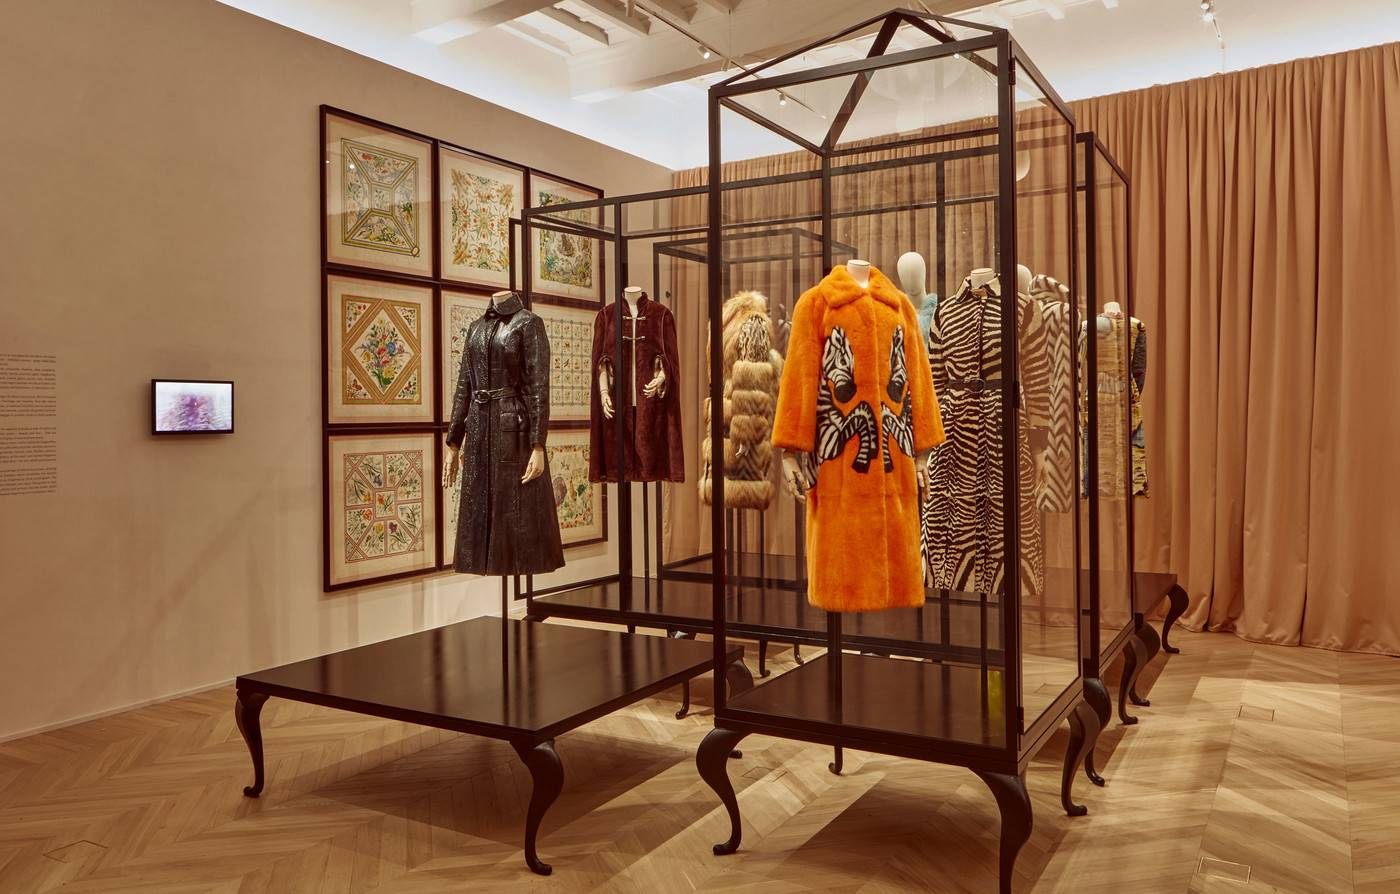 Forbes — Gucci Takes 'Experiential Retail' To The Next Level - Gucci's latest retail endeavor is one for the history books — quite literally, as it's situated within a 14th-century palazzo in Florence, Italy.